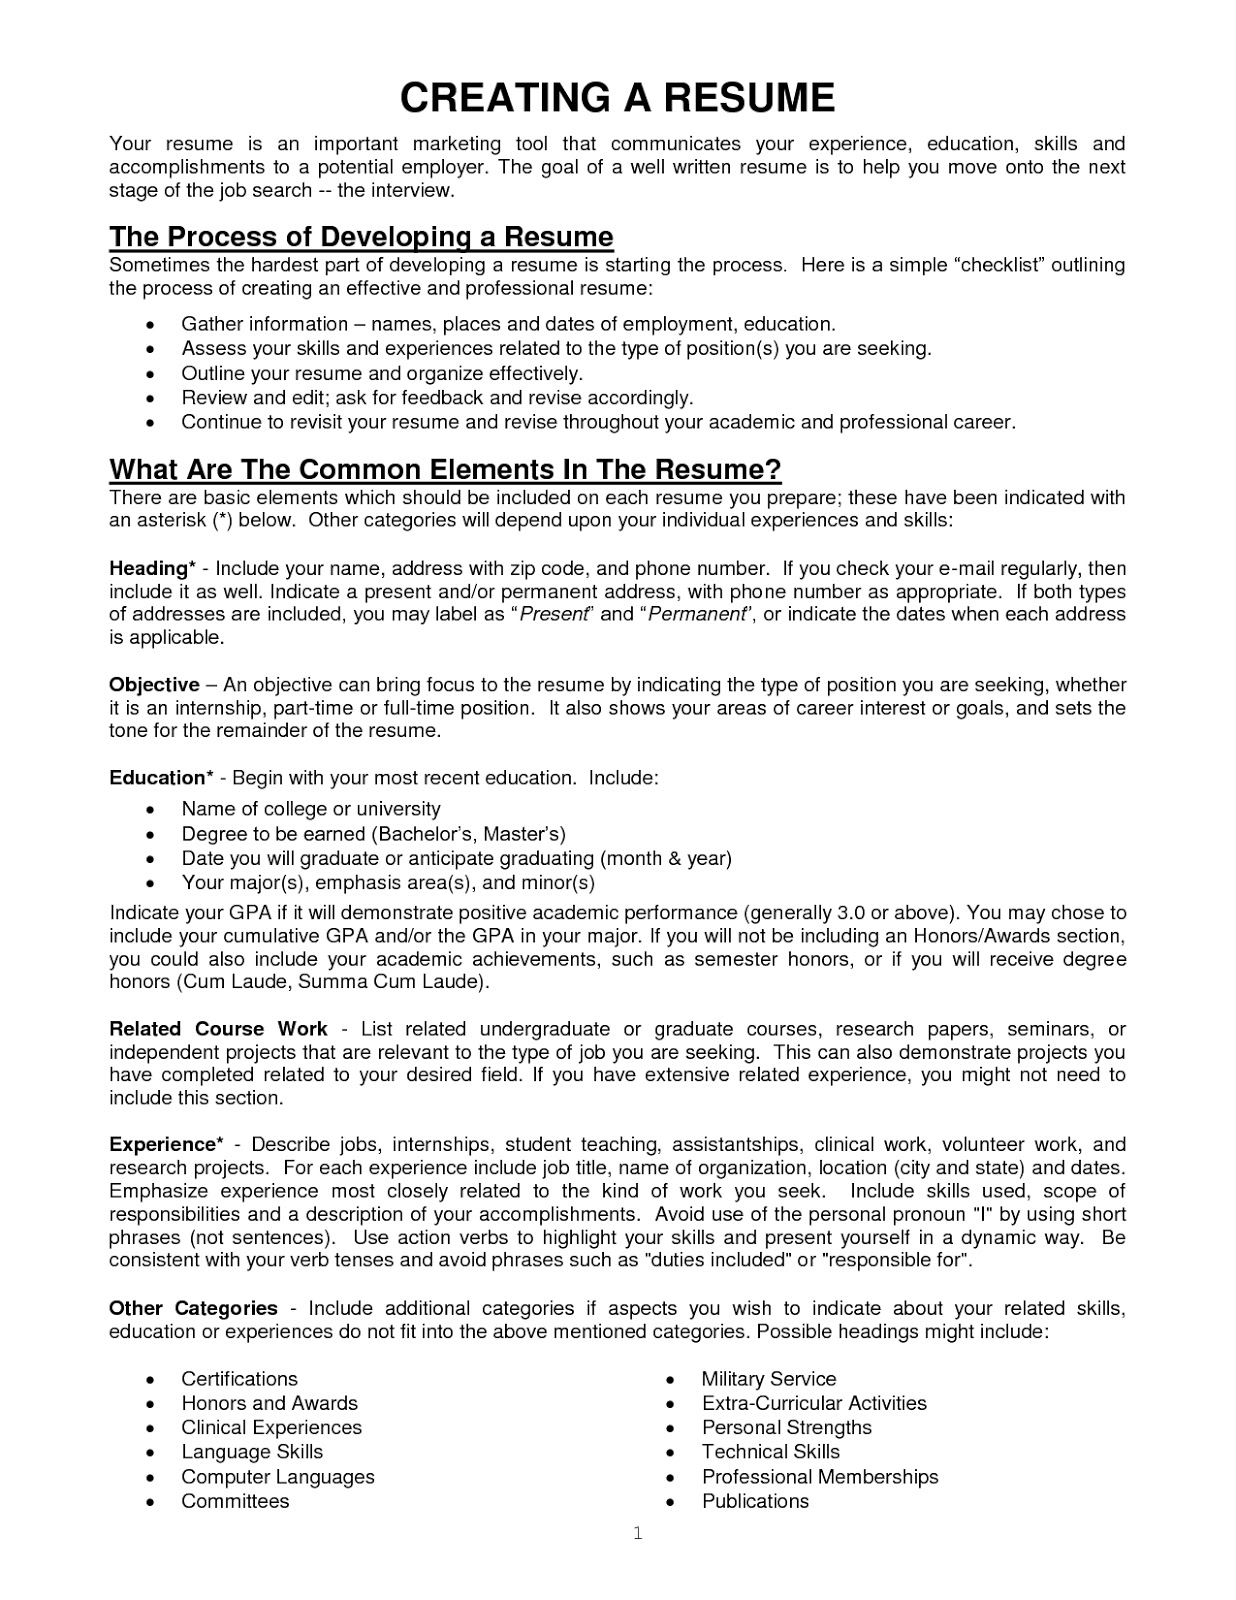 examples of references on a resume - Resume Examples With References